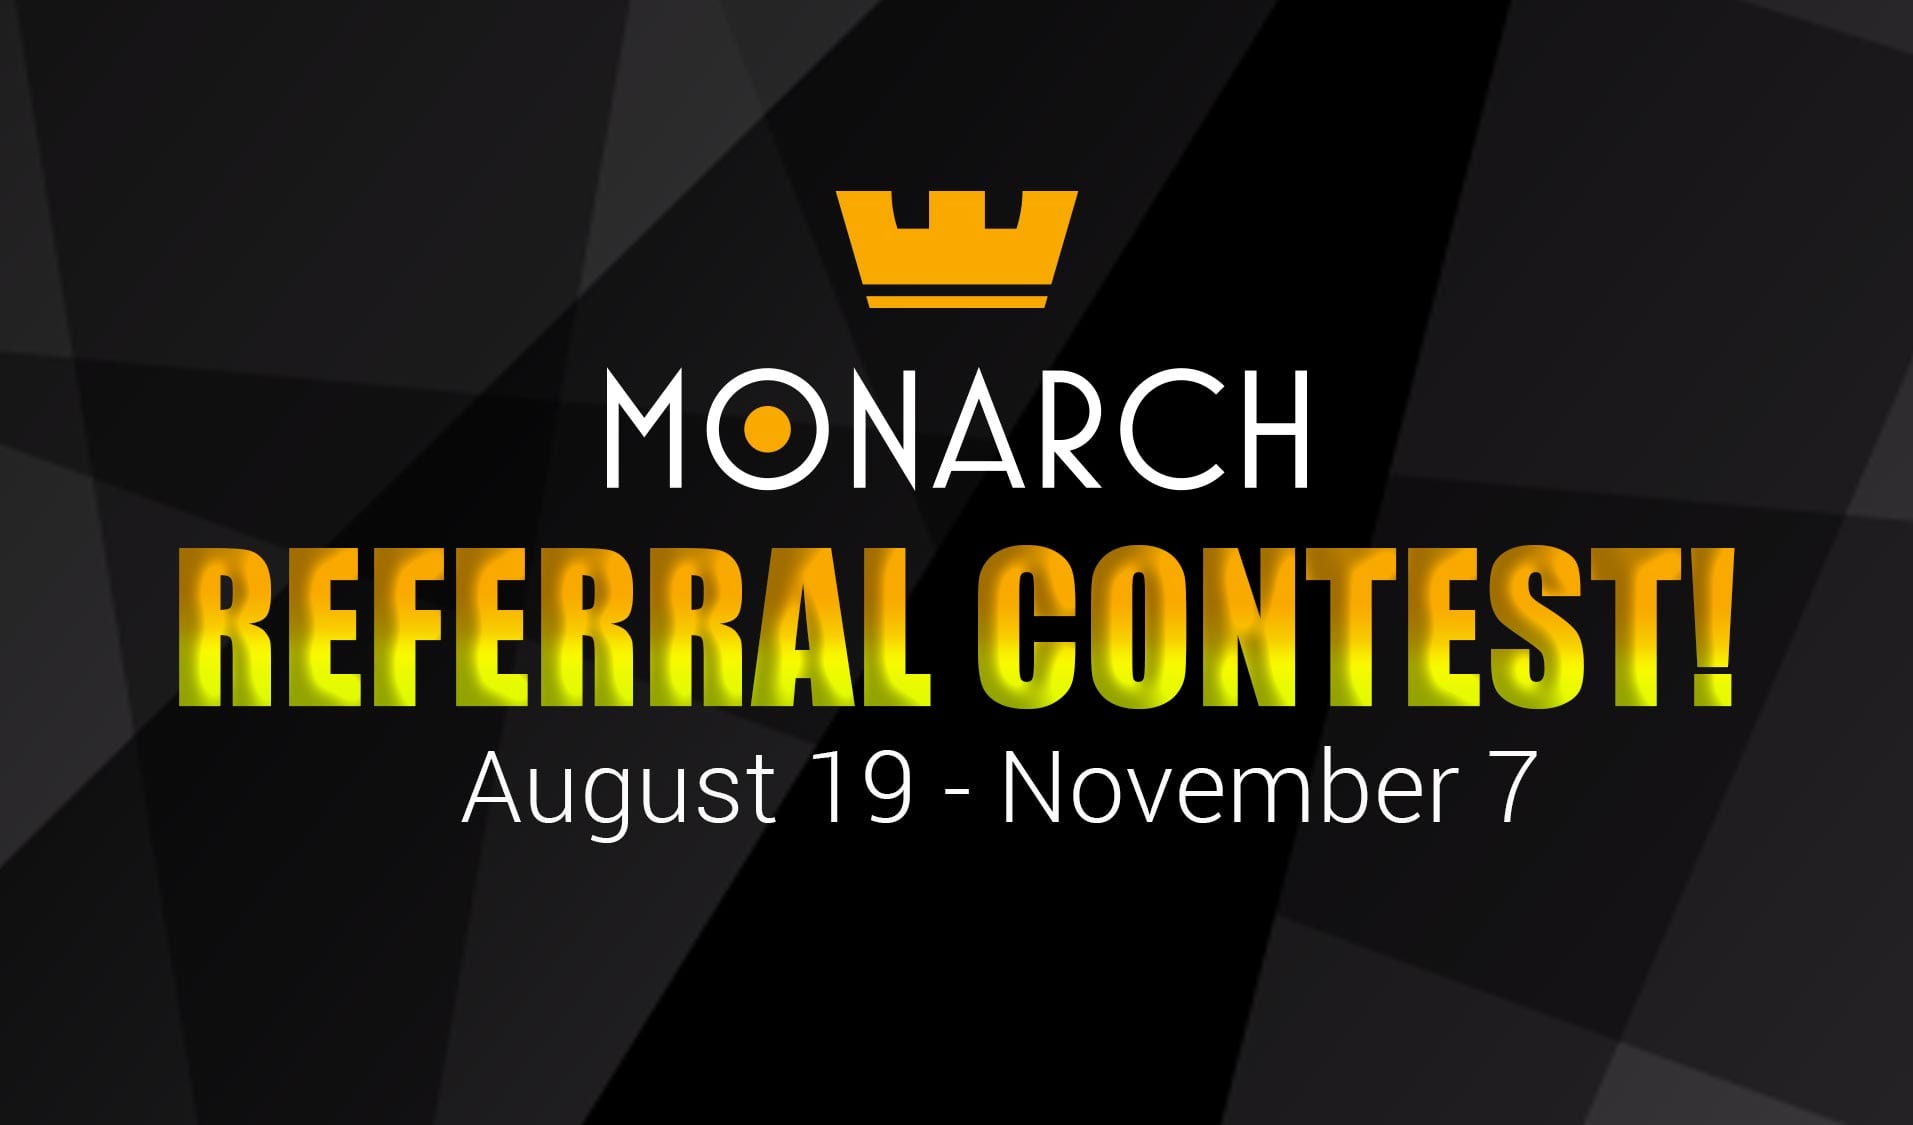 Monarch: New Referal Contest Announced!